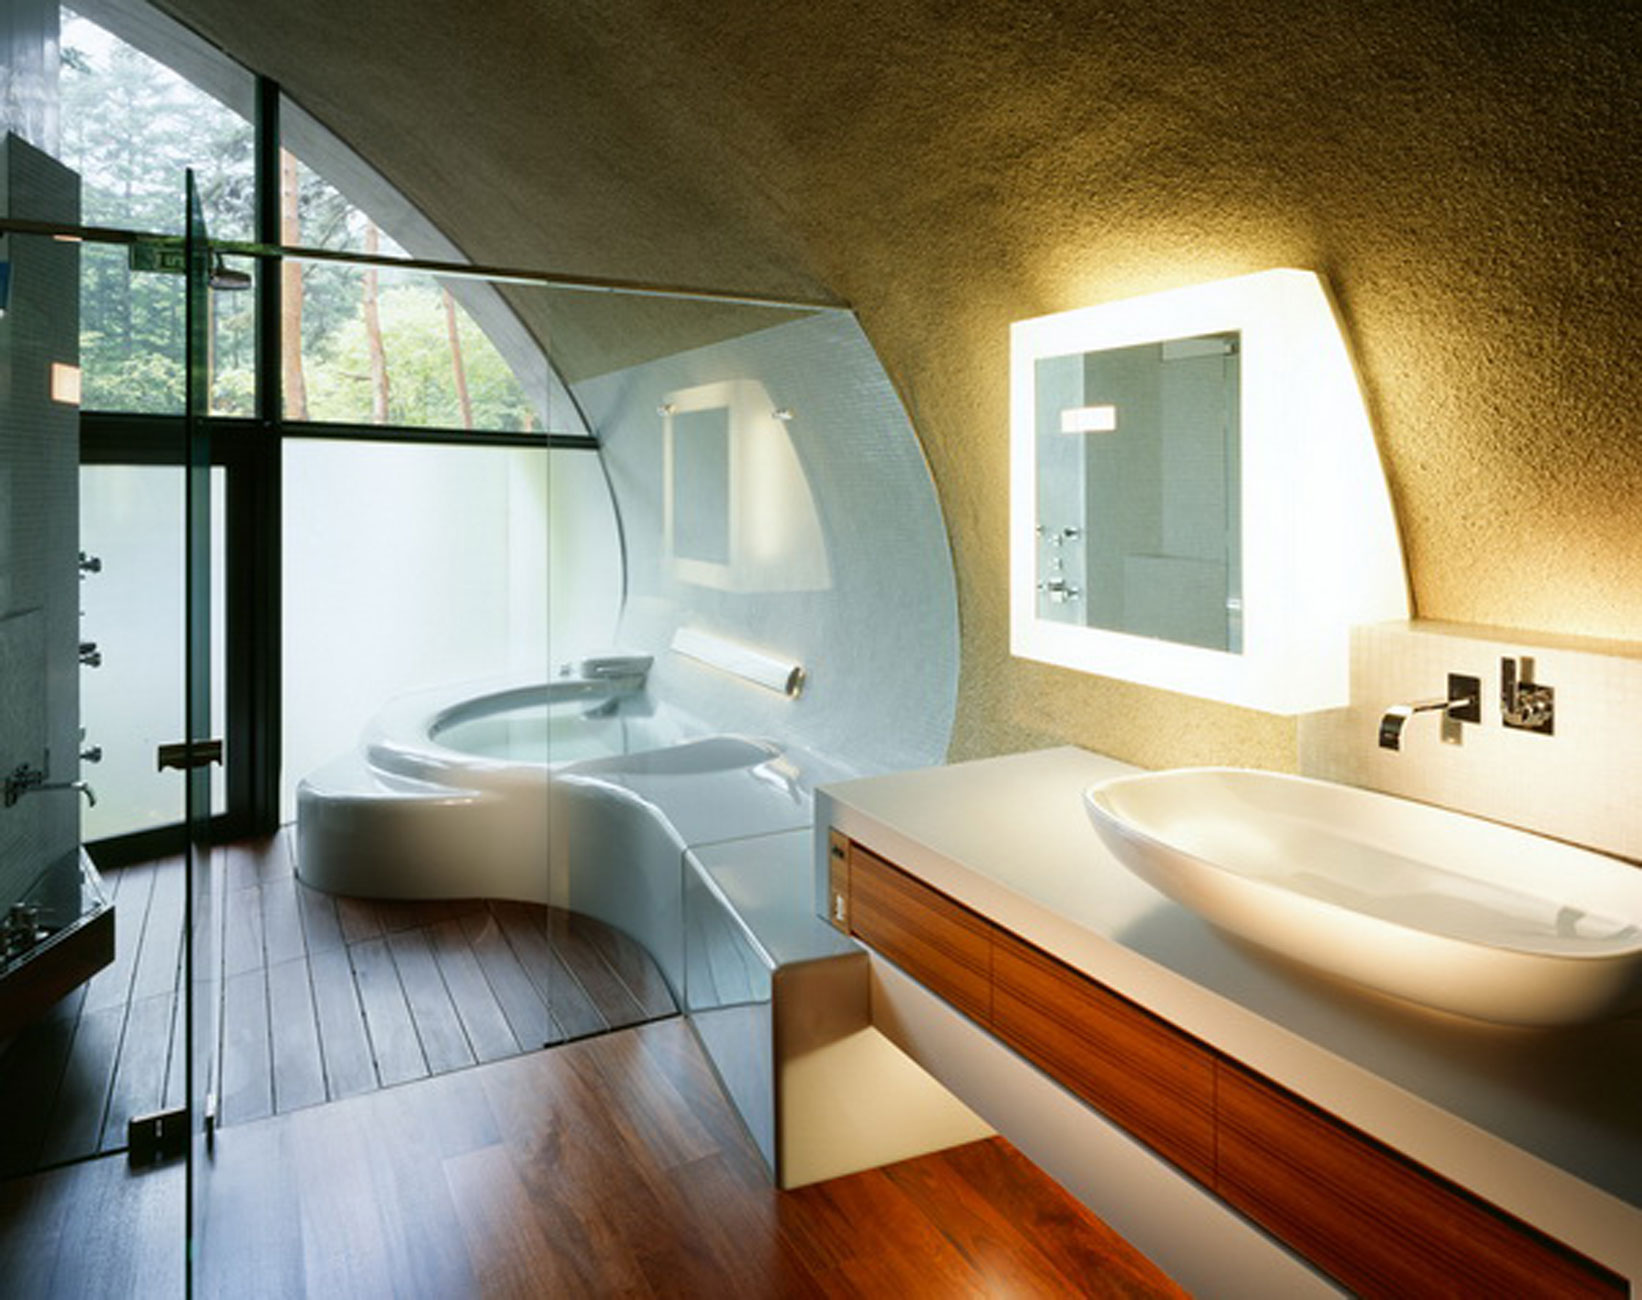 Futuristic Home Design with Natural Environment in Japan - Bathroom